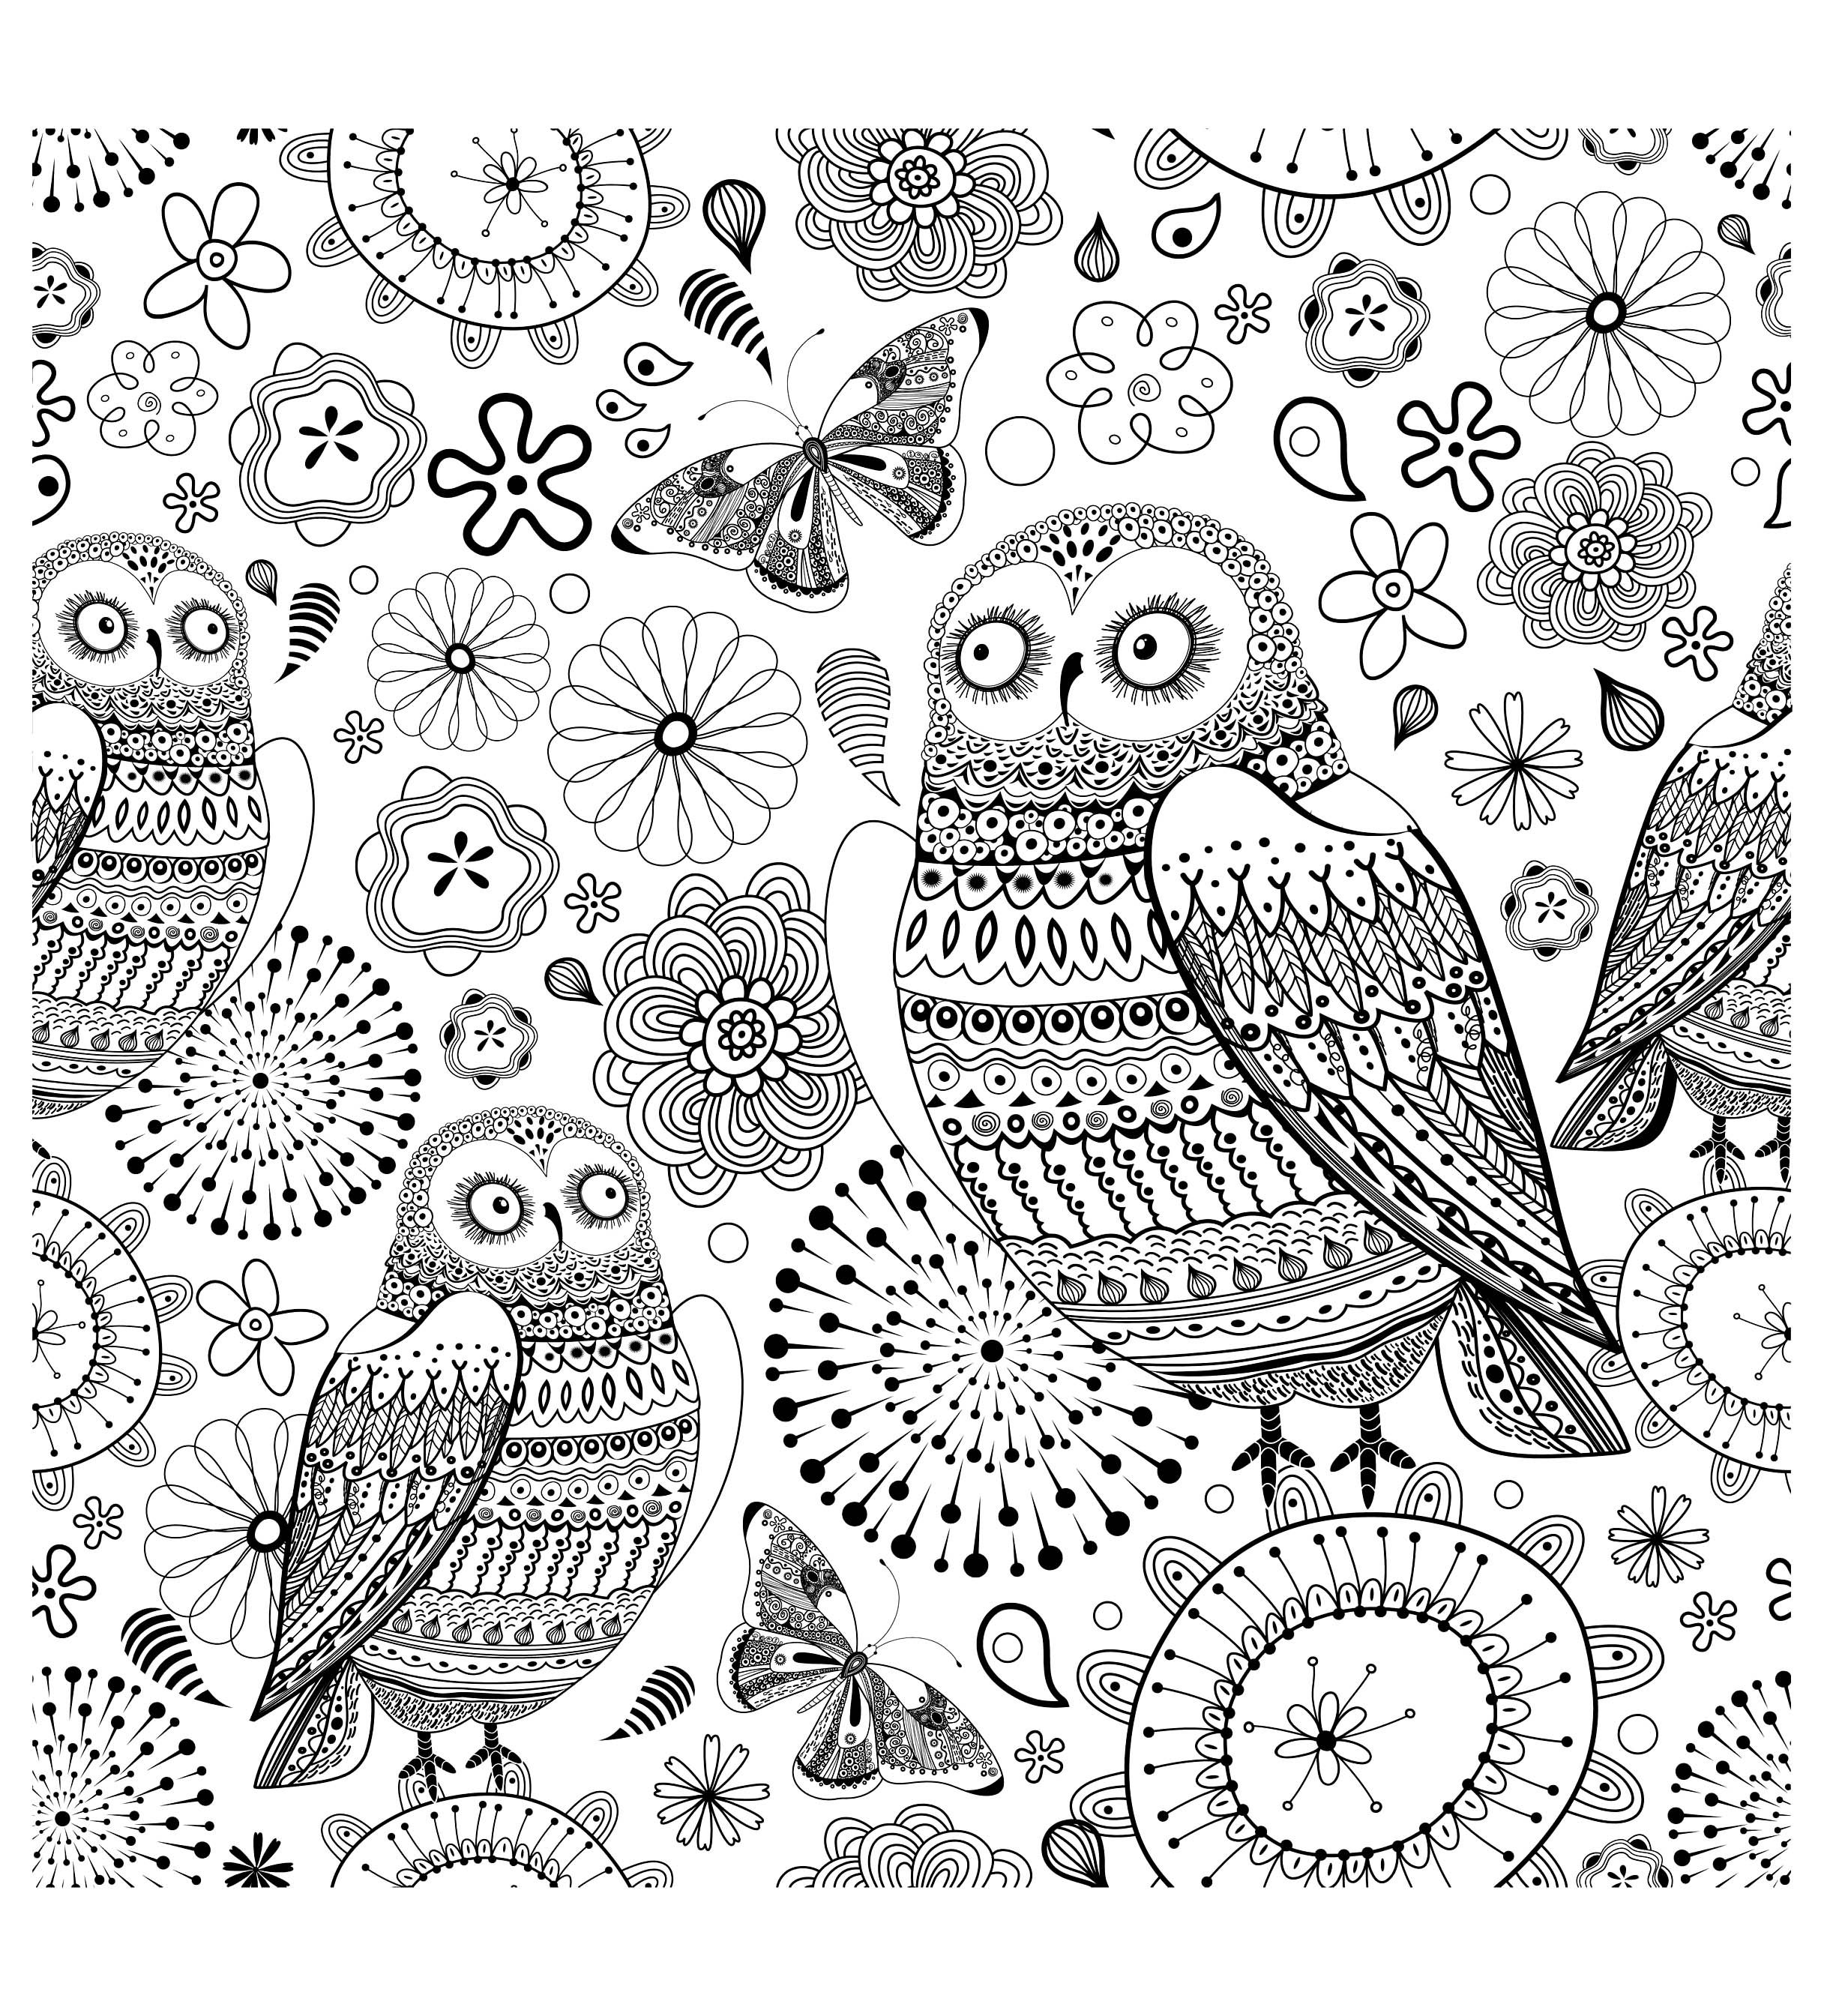 To Print This Free Coloring Page Difficult Owls Click On